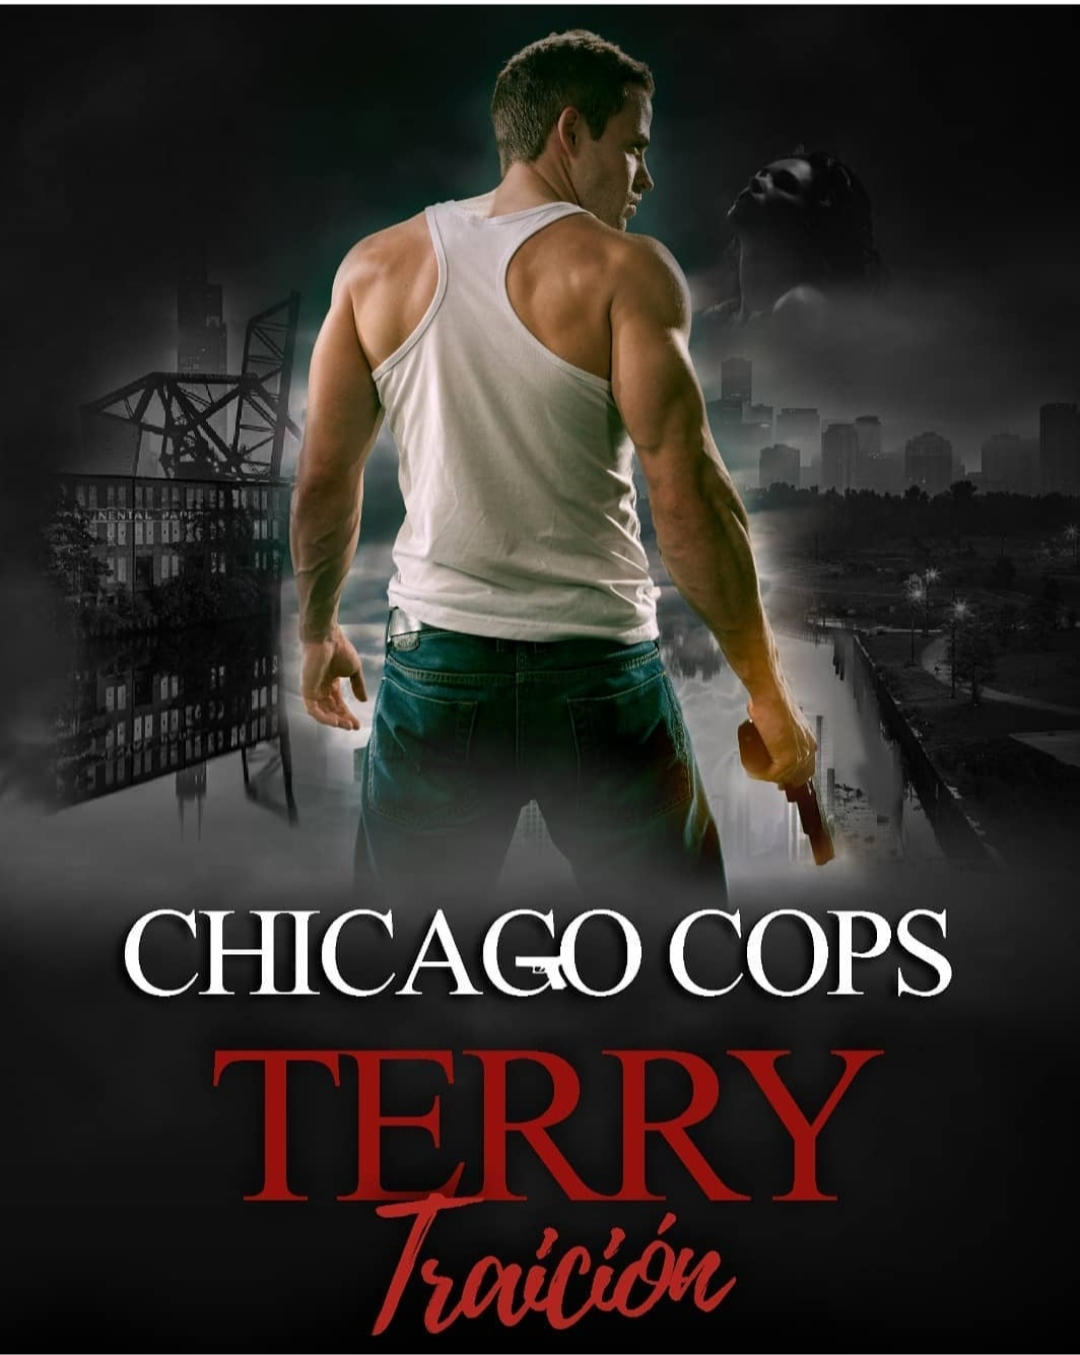 TERRY TRAICION, Chicago cops nº3 by Sarah Halley.